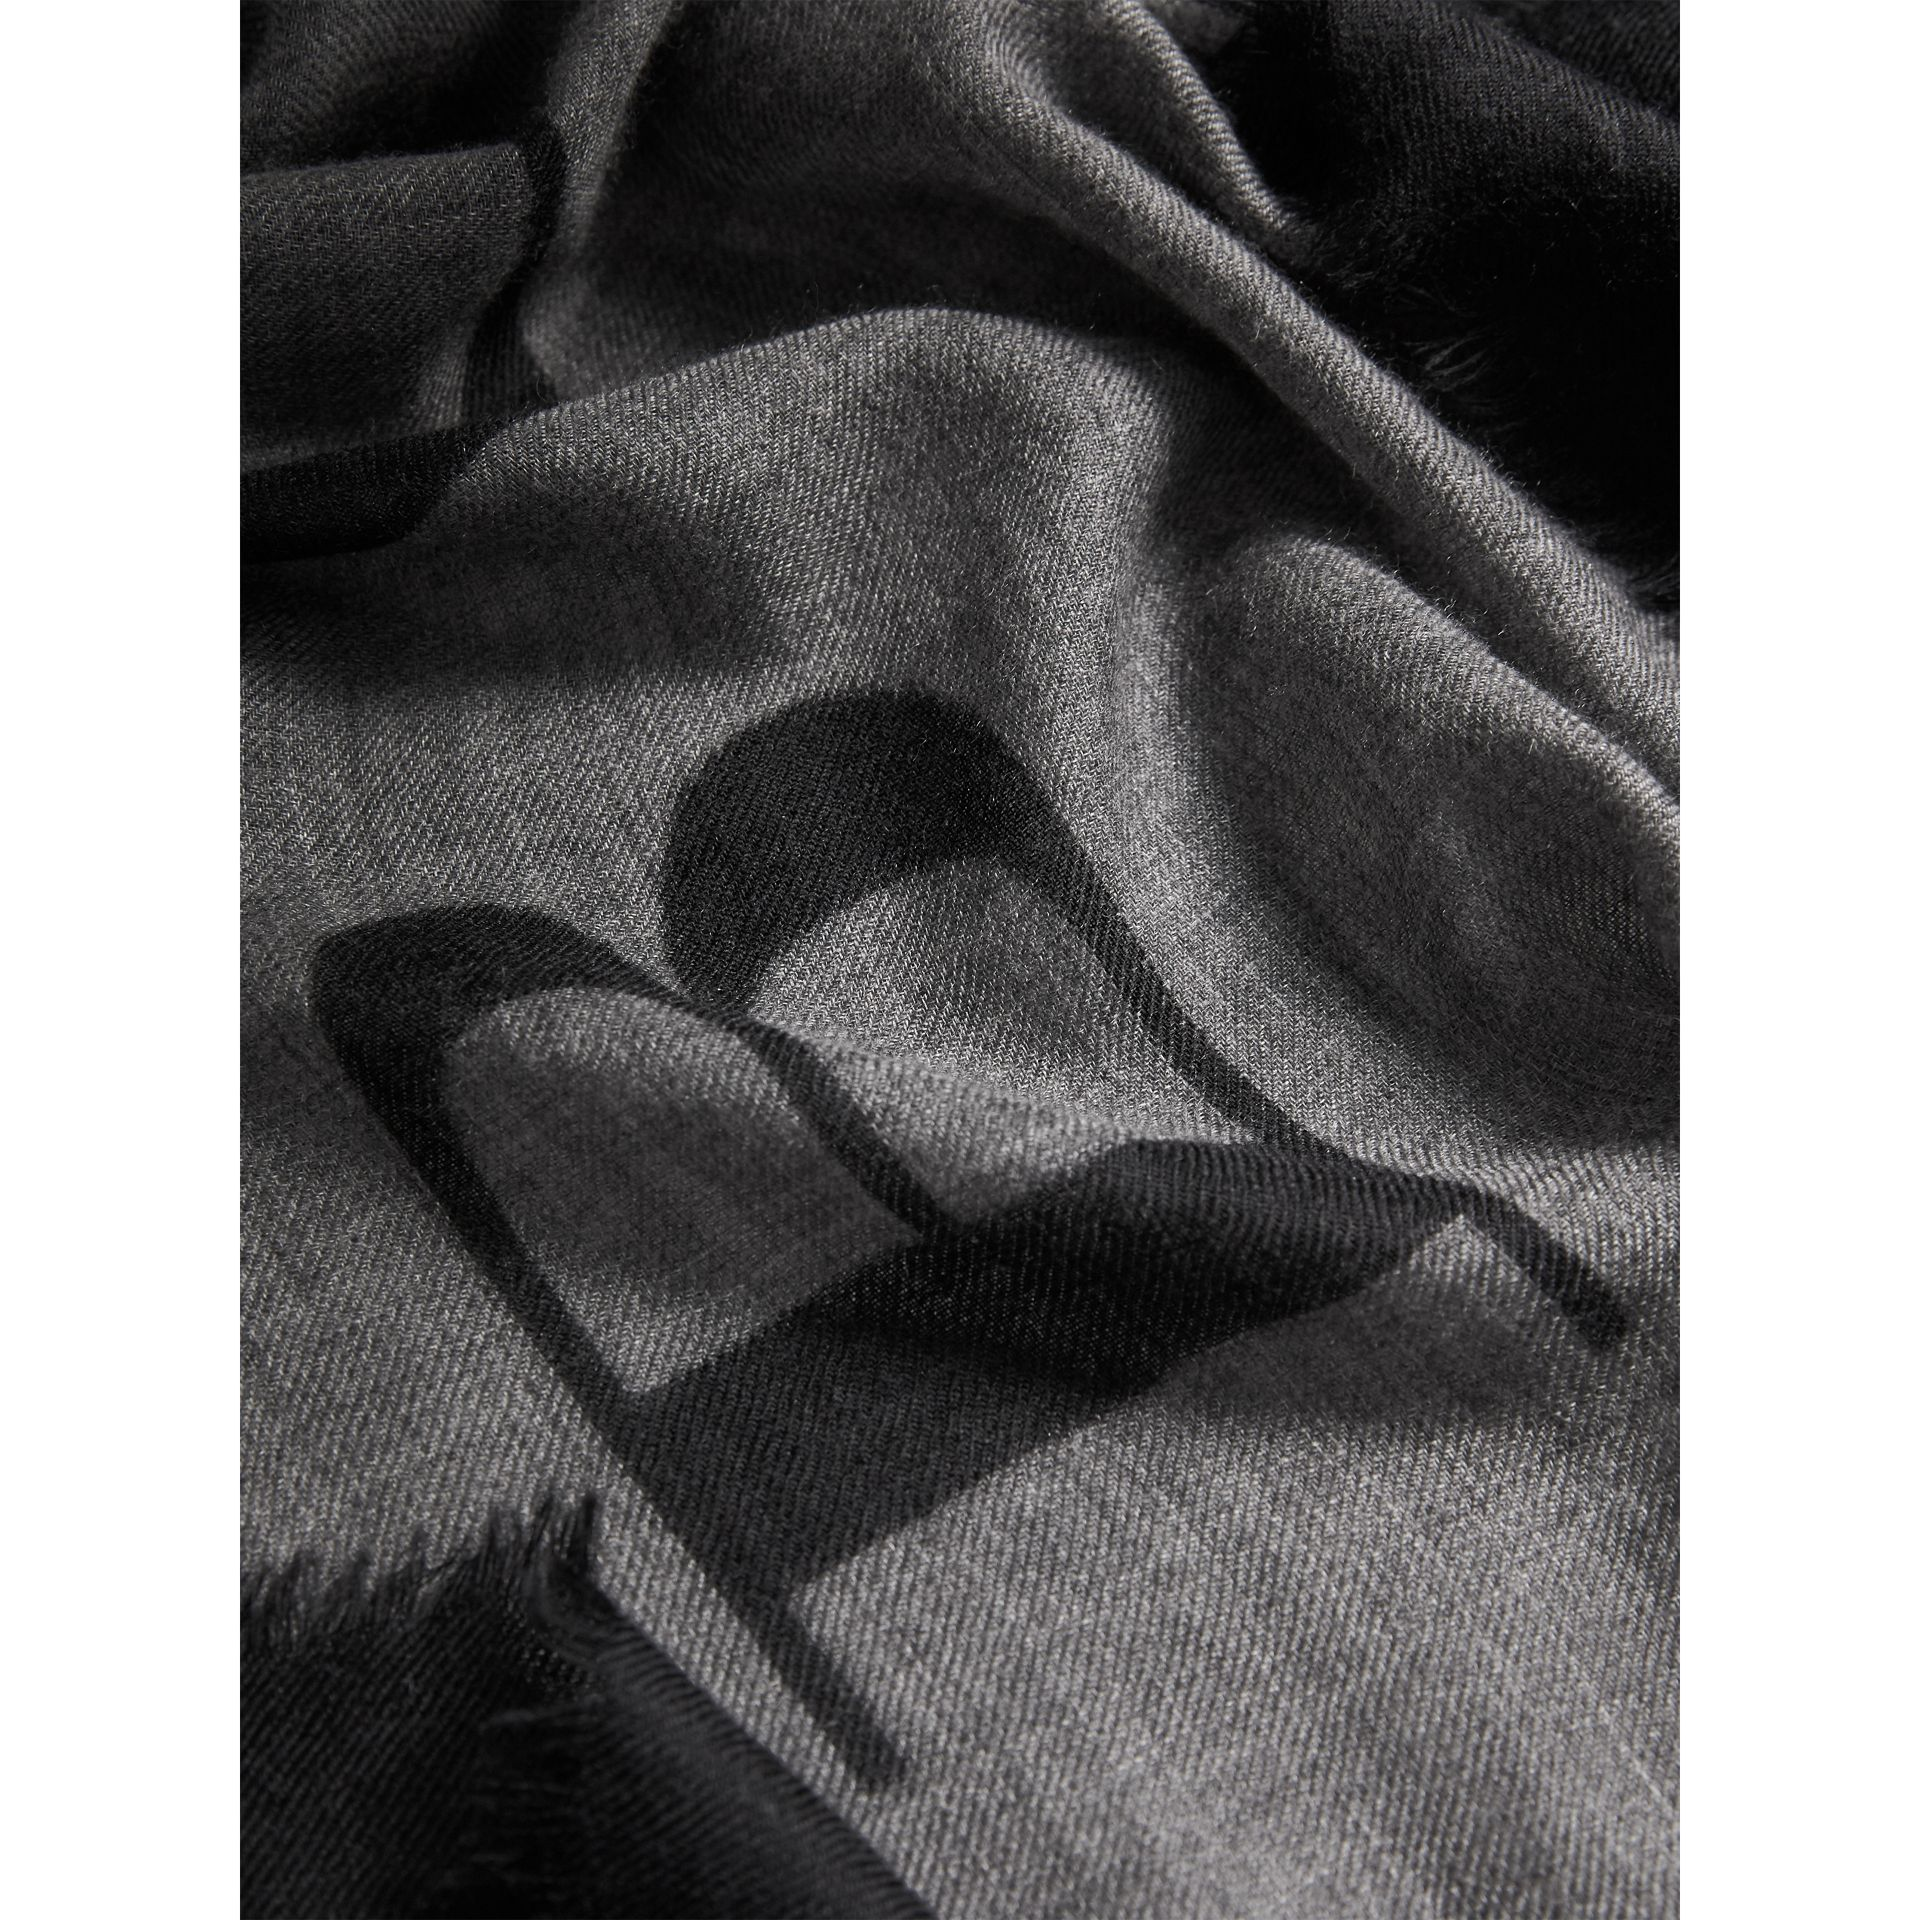 Graphic Print Motif  Lightweight Cashmere Scarf in Mid Grey - Women | Burberry - gallery image 1